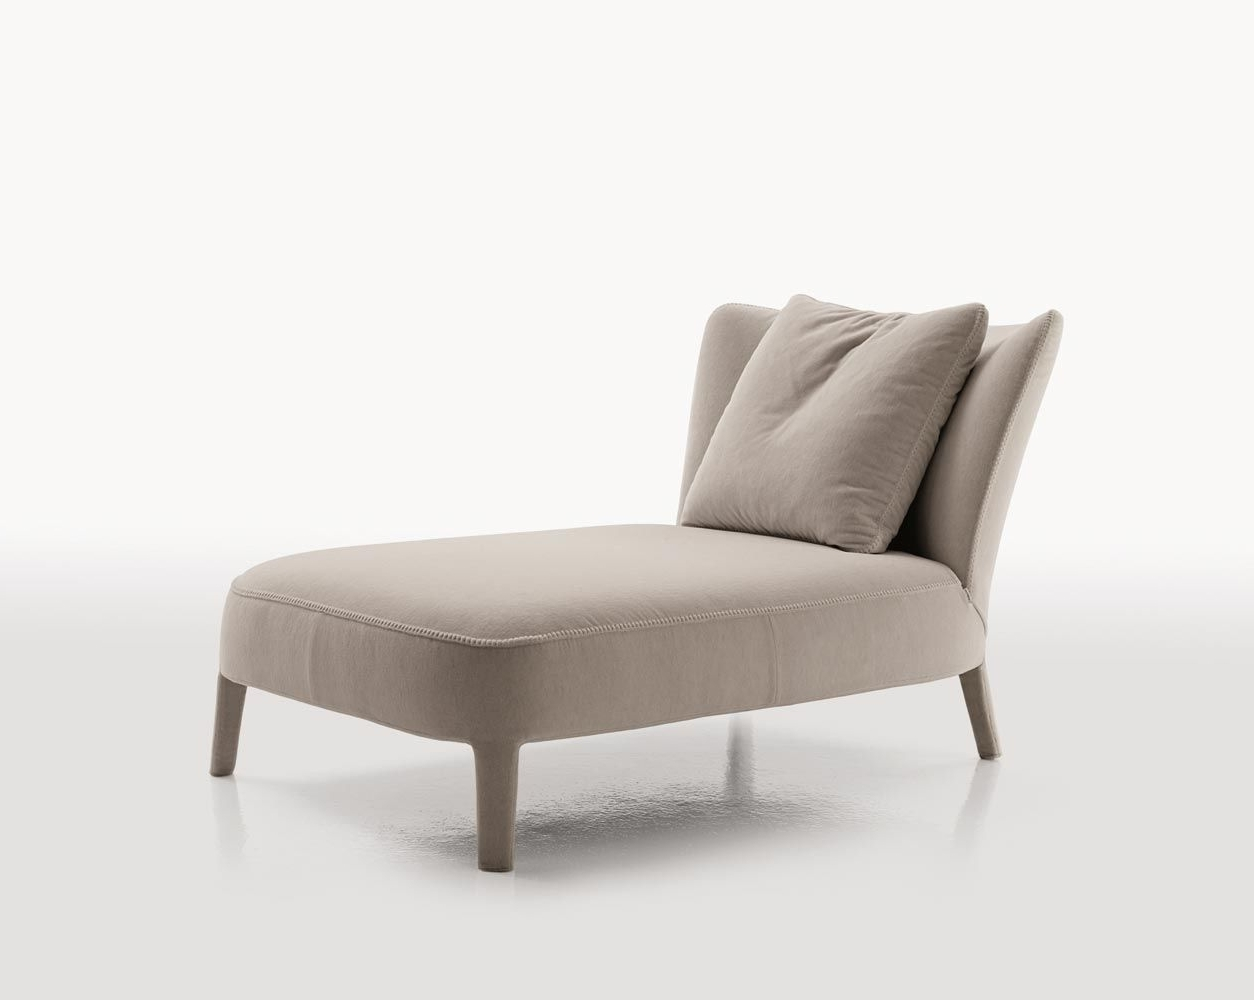 Widely Used Small Chaise Lounges Within Small Chaise Lounge Chair For Room Awesome Lounging Chairs Gallery (View 15 of 15)